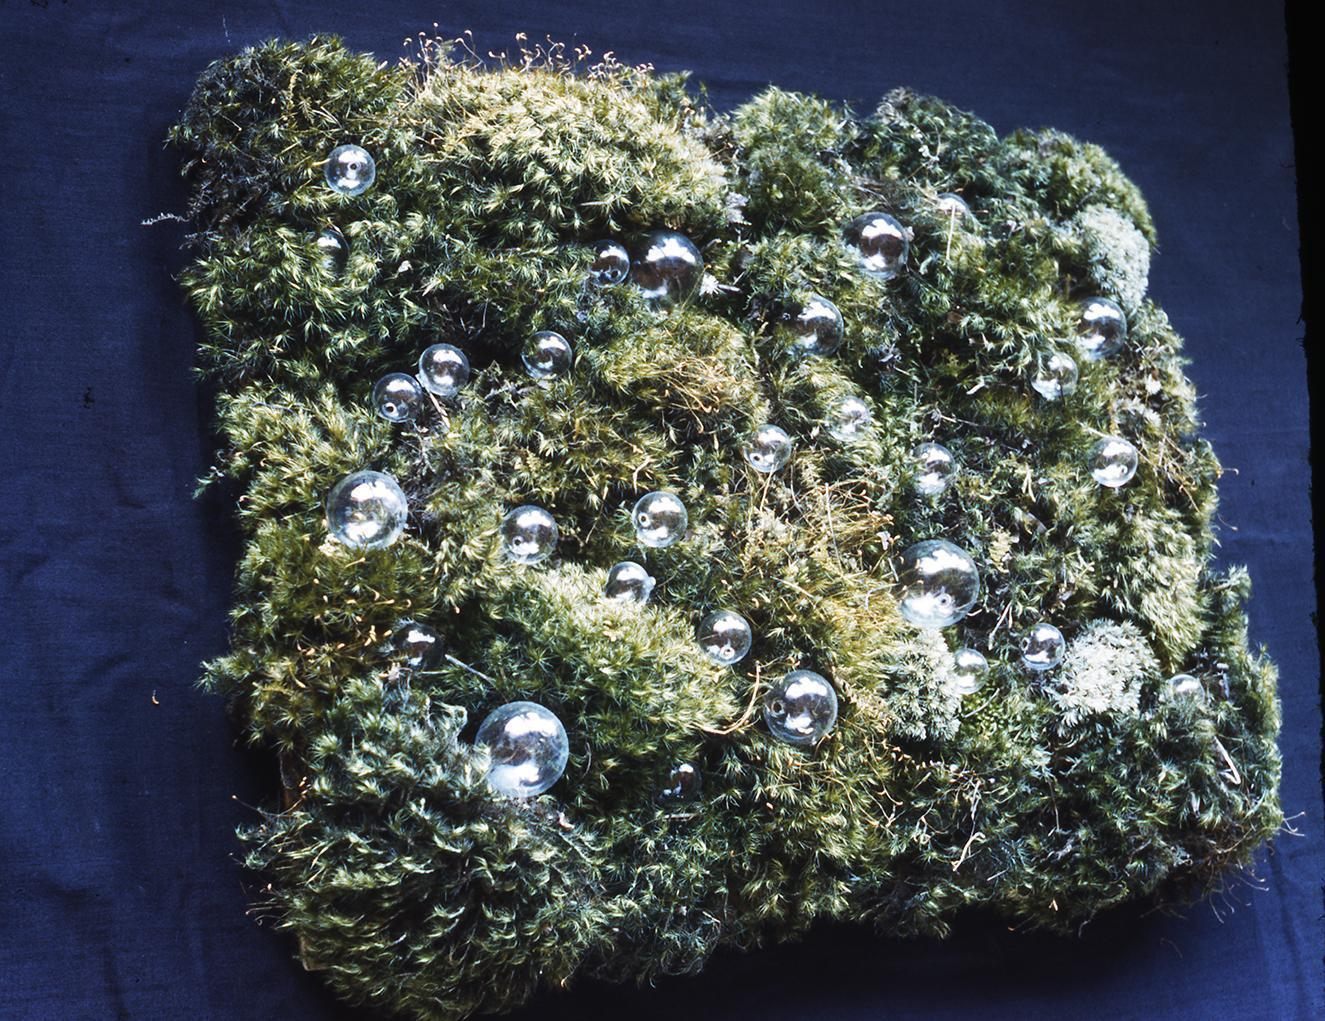 Matière with moss and glass beads, photo by Joseph Albers.